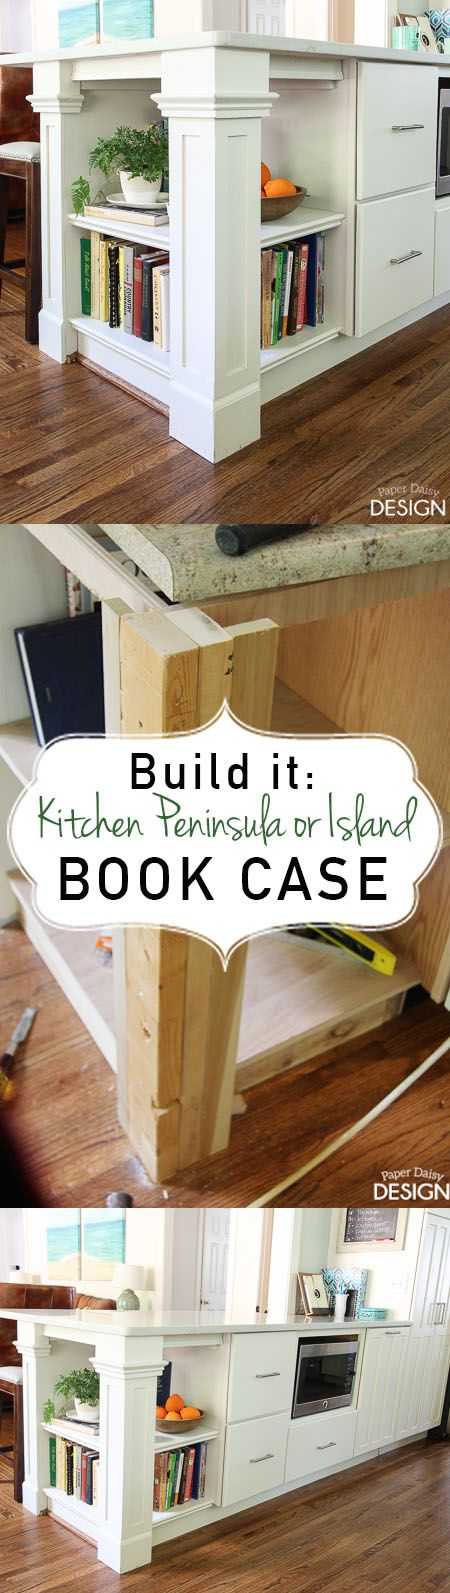 How to build a kitchen peninsula or island book case or bookshelves. Create architectural interest and storage in your kitchen.